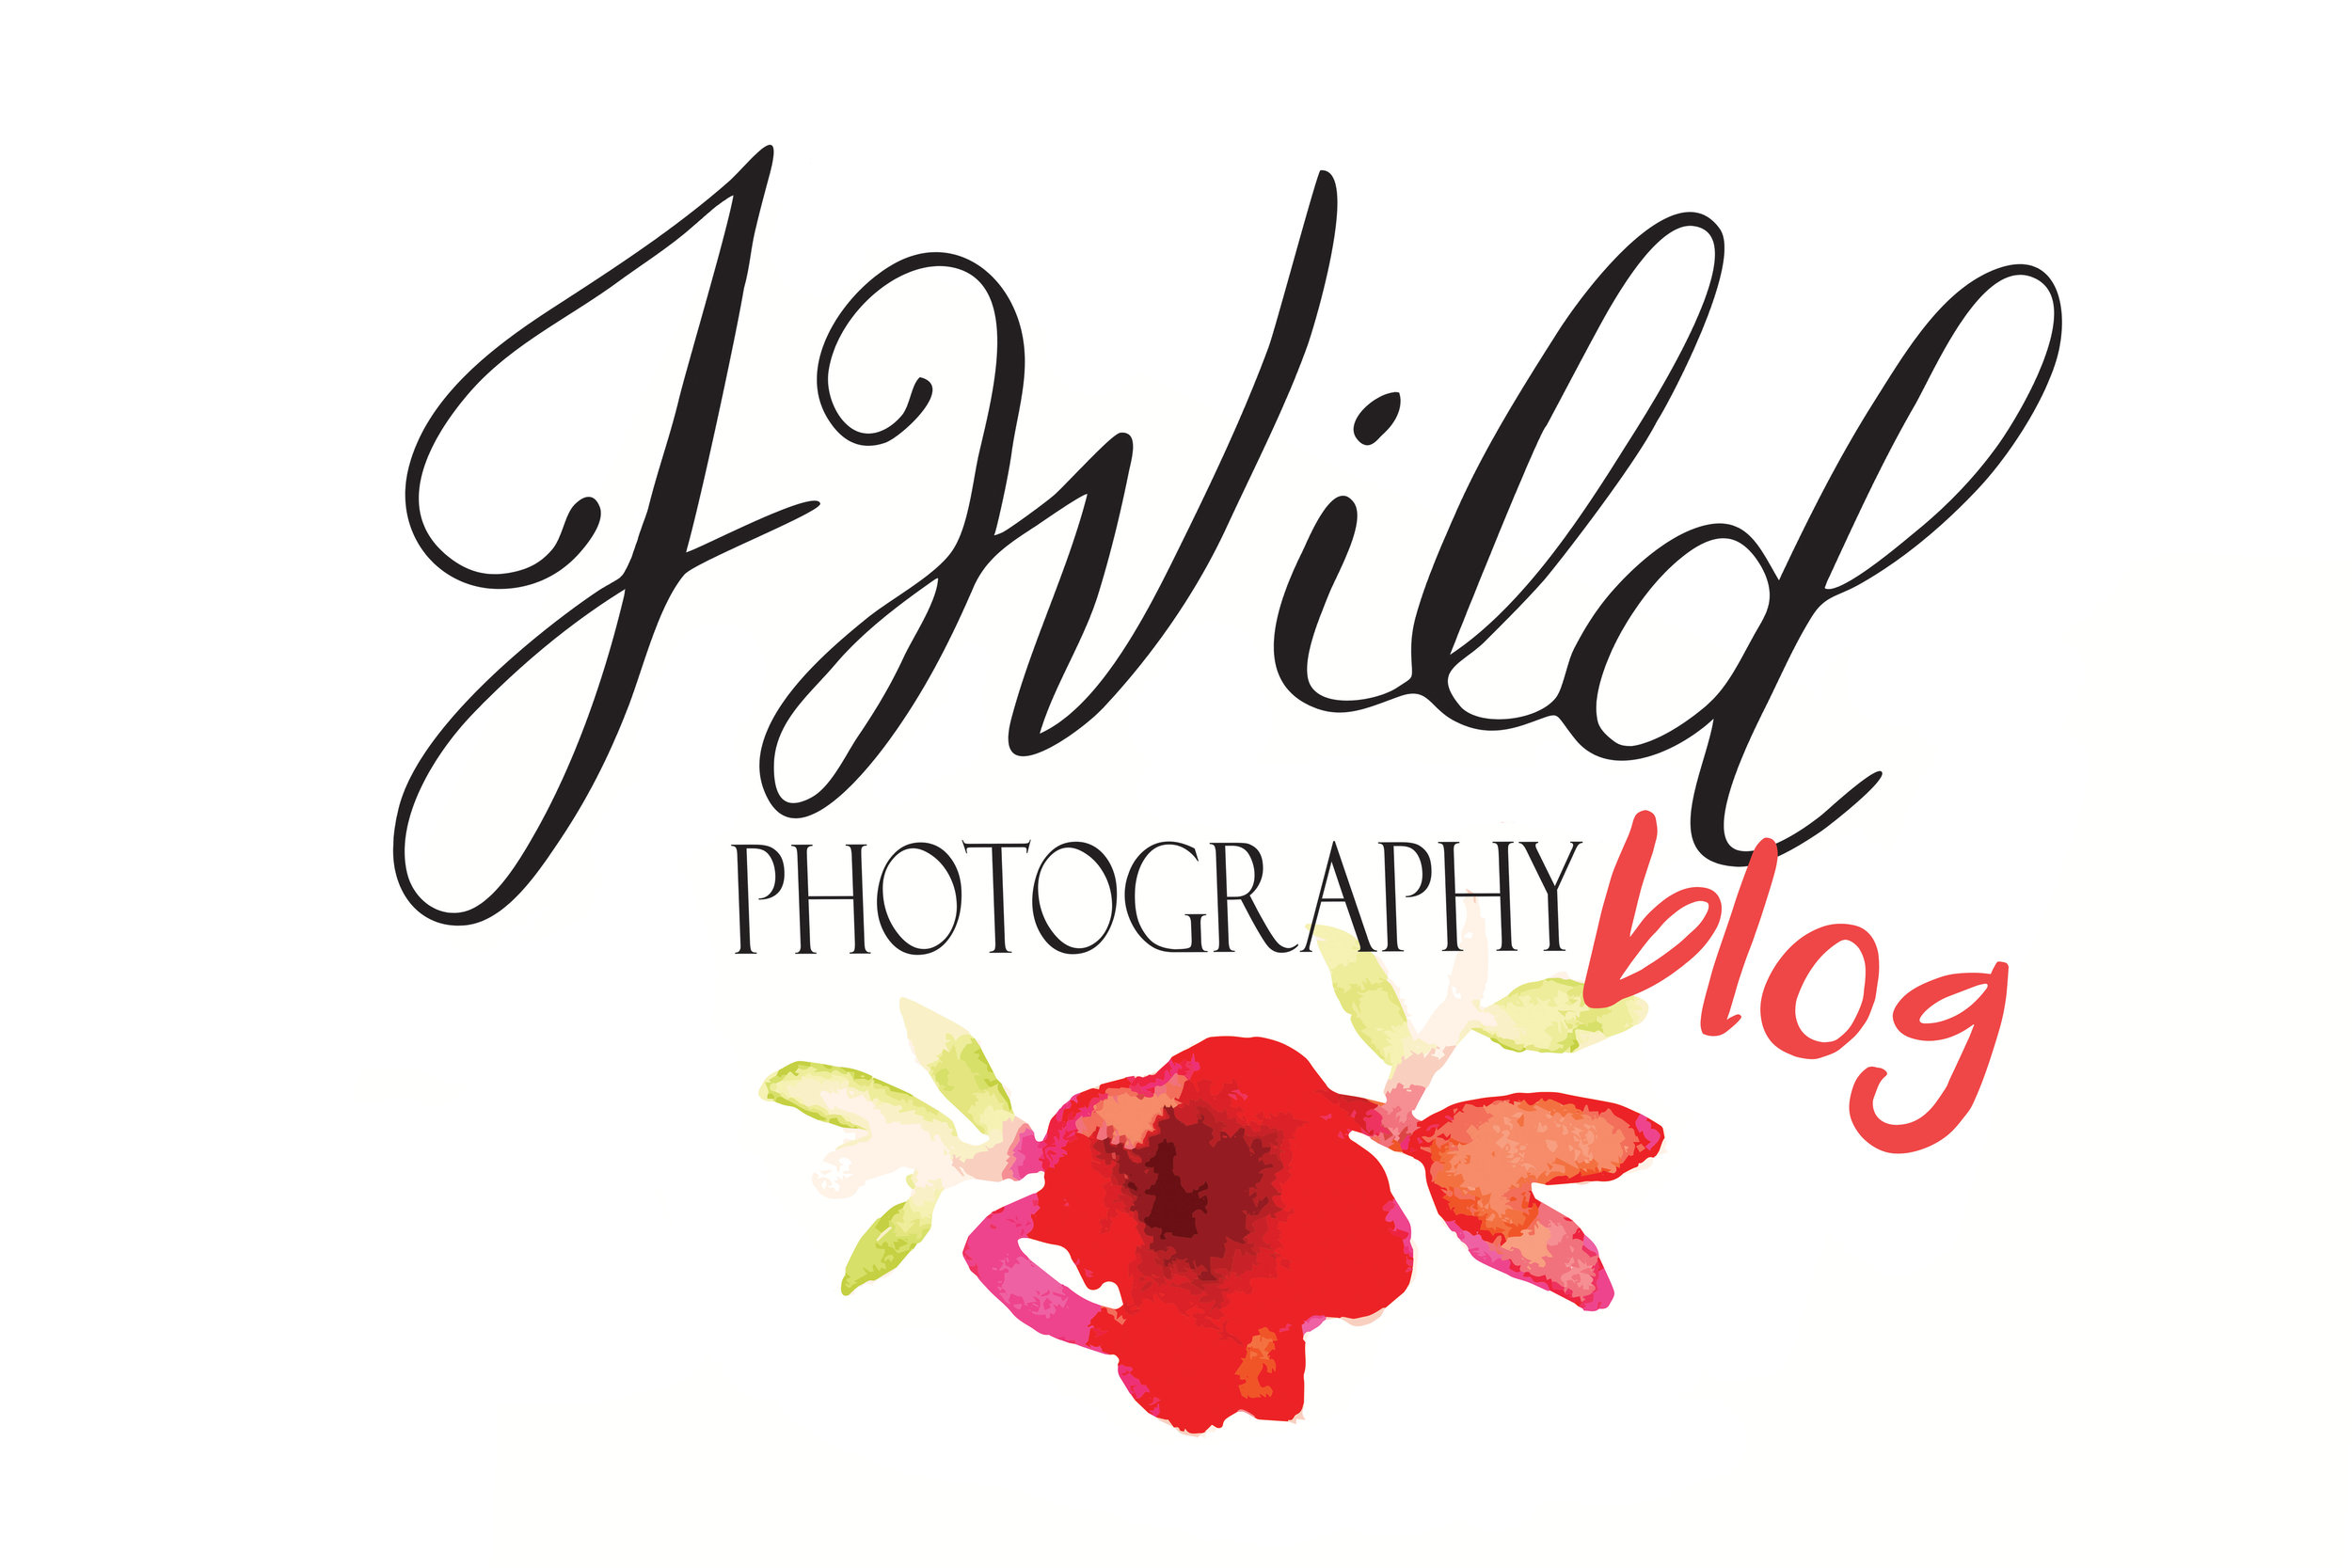 Check out our latest weddings, sessions, and musings. - We're glad you're here!